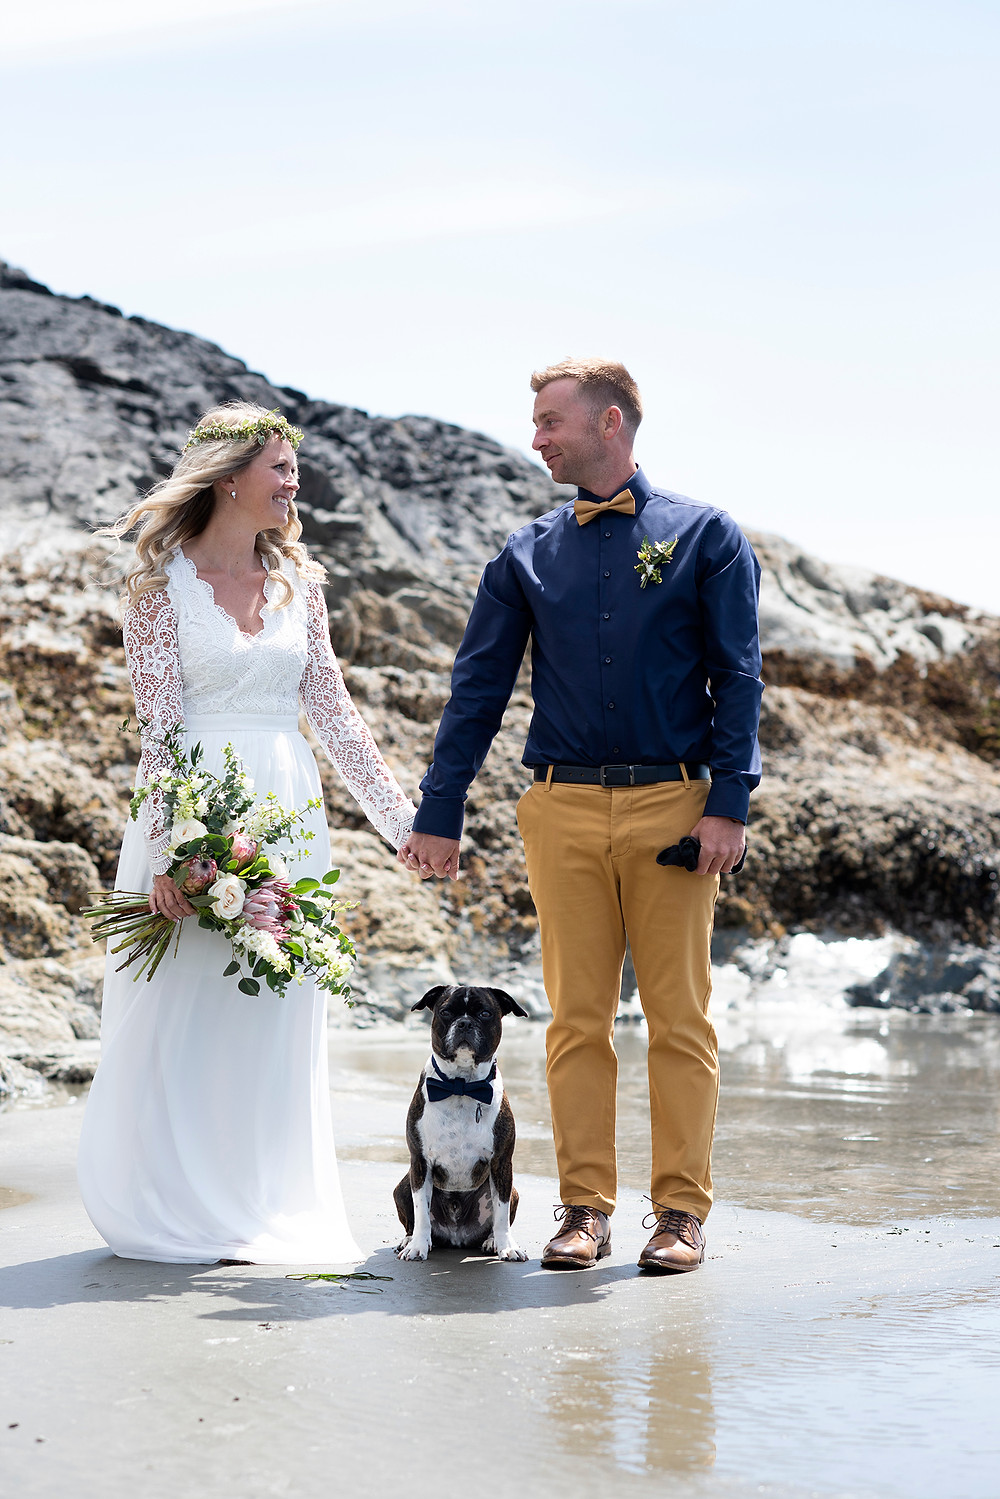 bride and groom with dog at Chesterman Beach wedding in Tofino. Photographed by Kaitlyn Shea